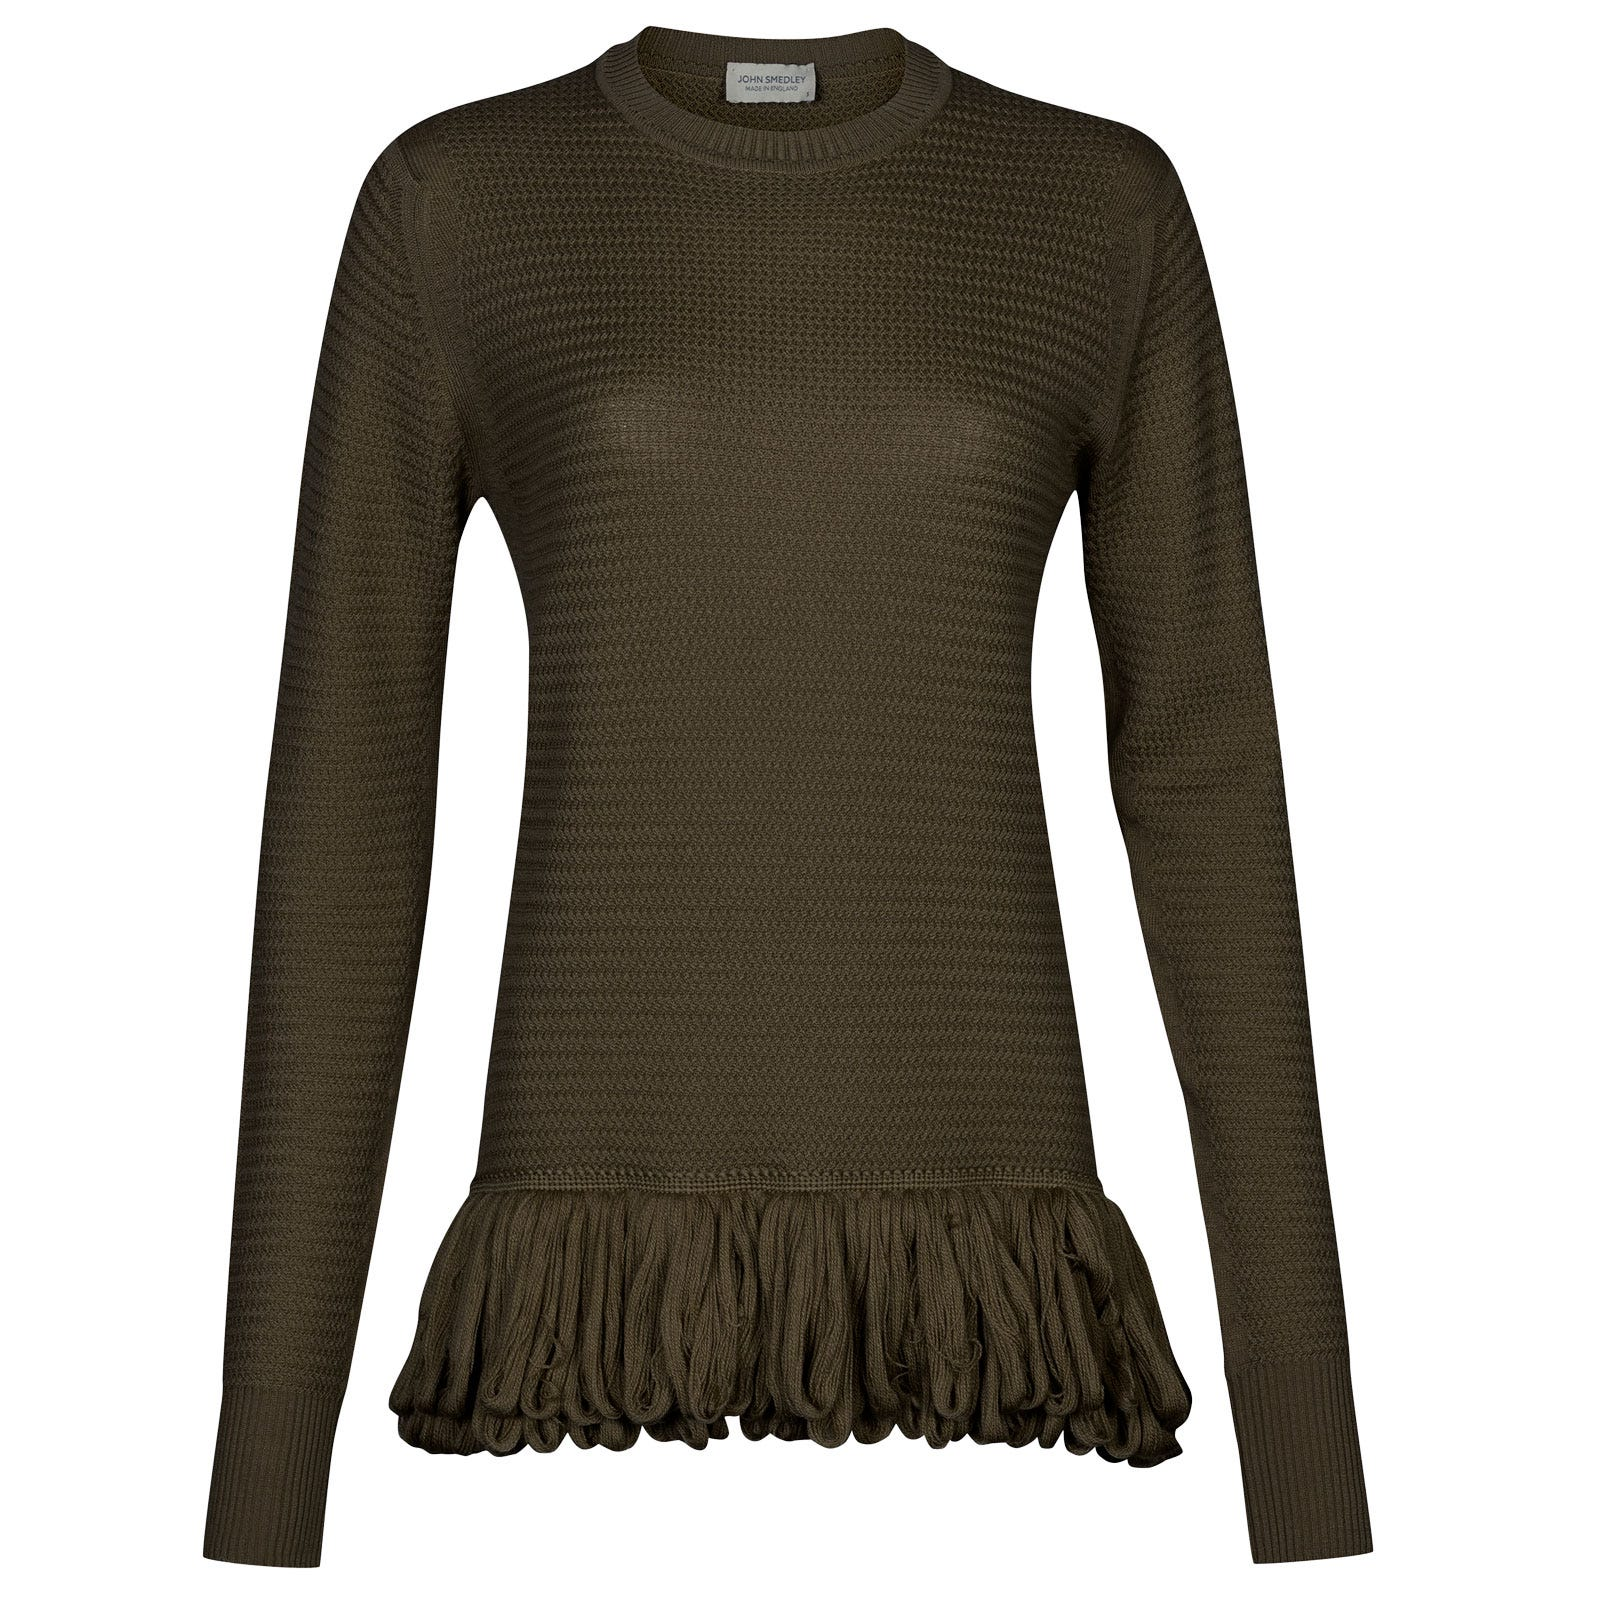 John Smedley burnet Merino Wool Sweater in Kielder Green-XL